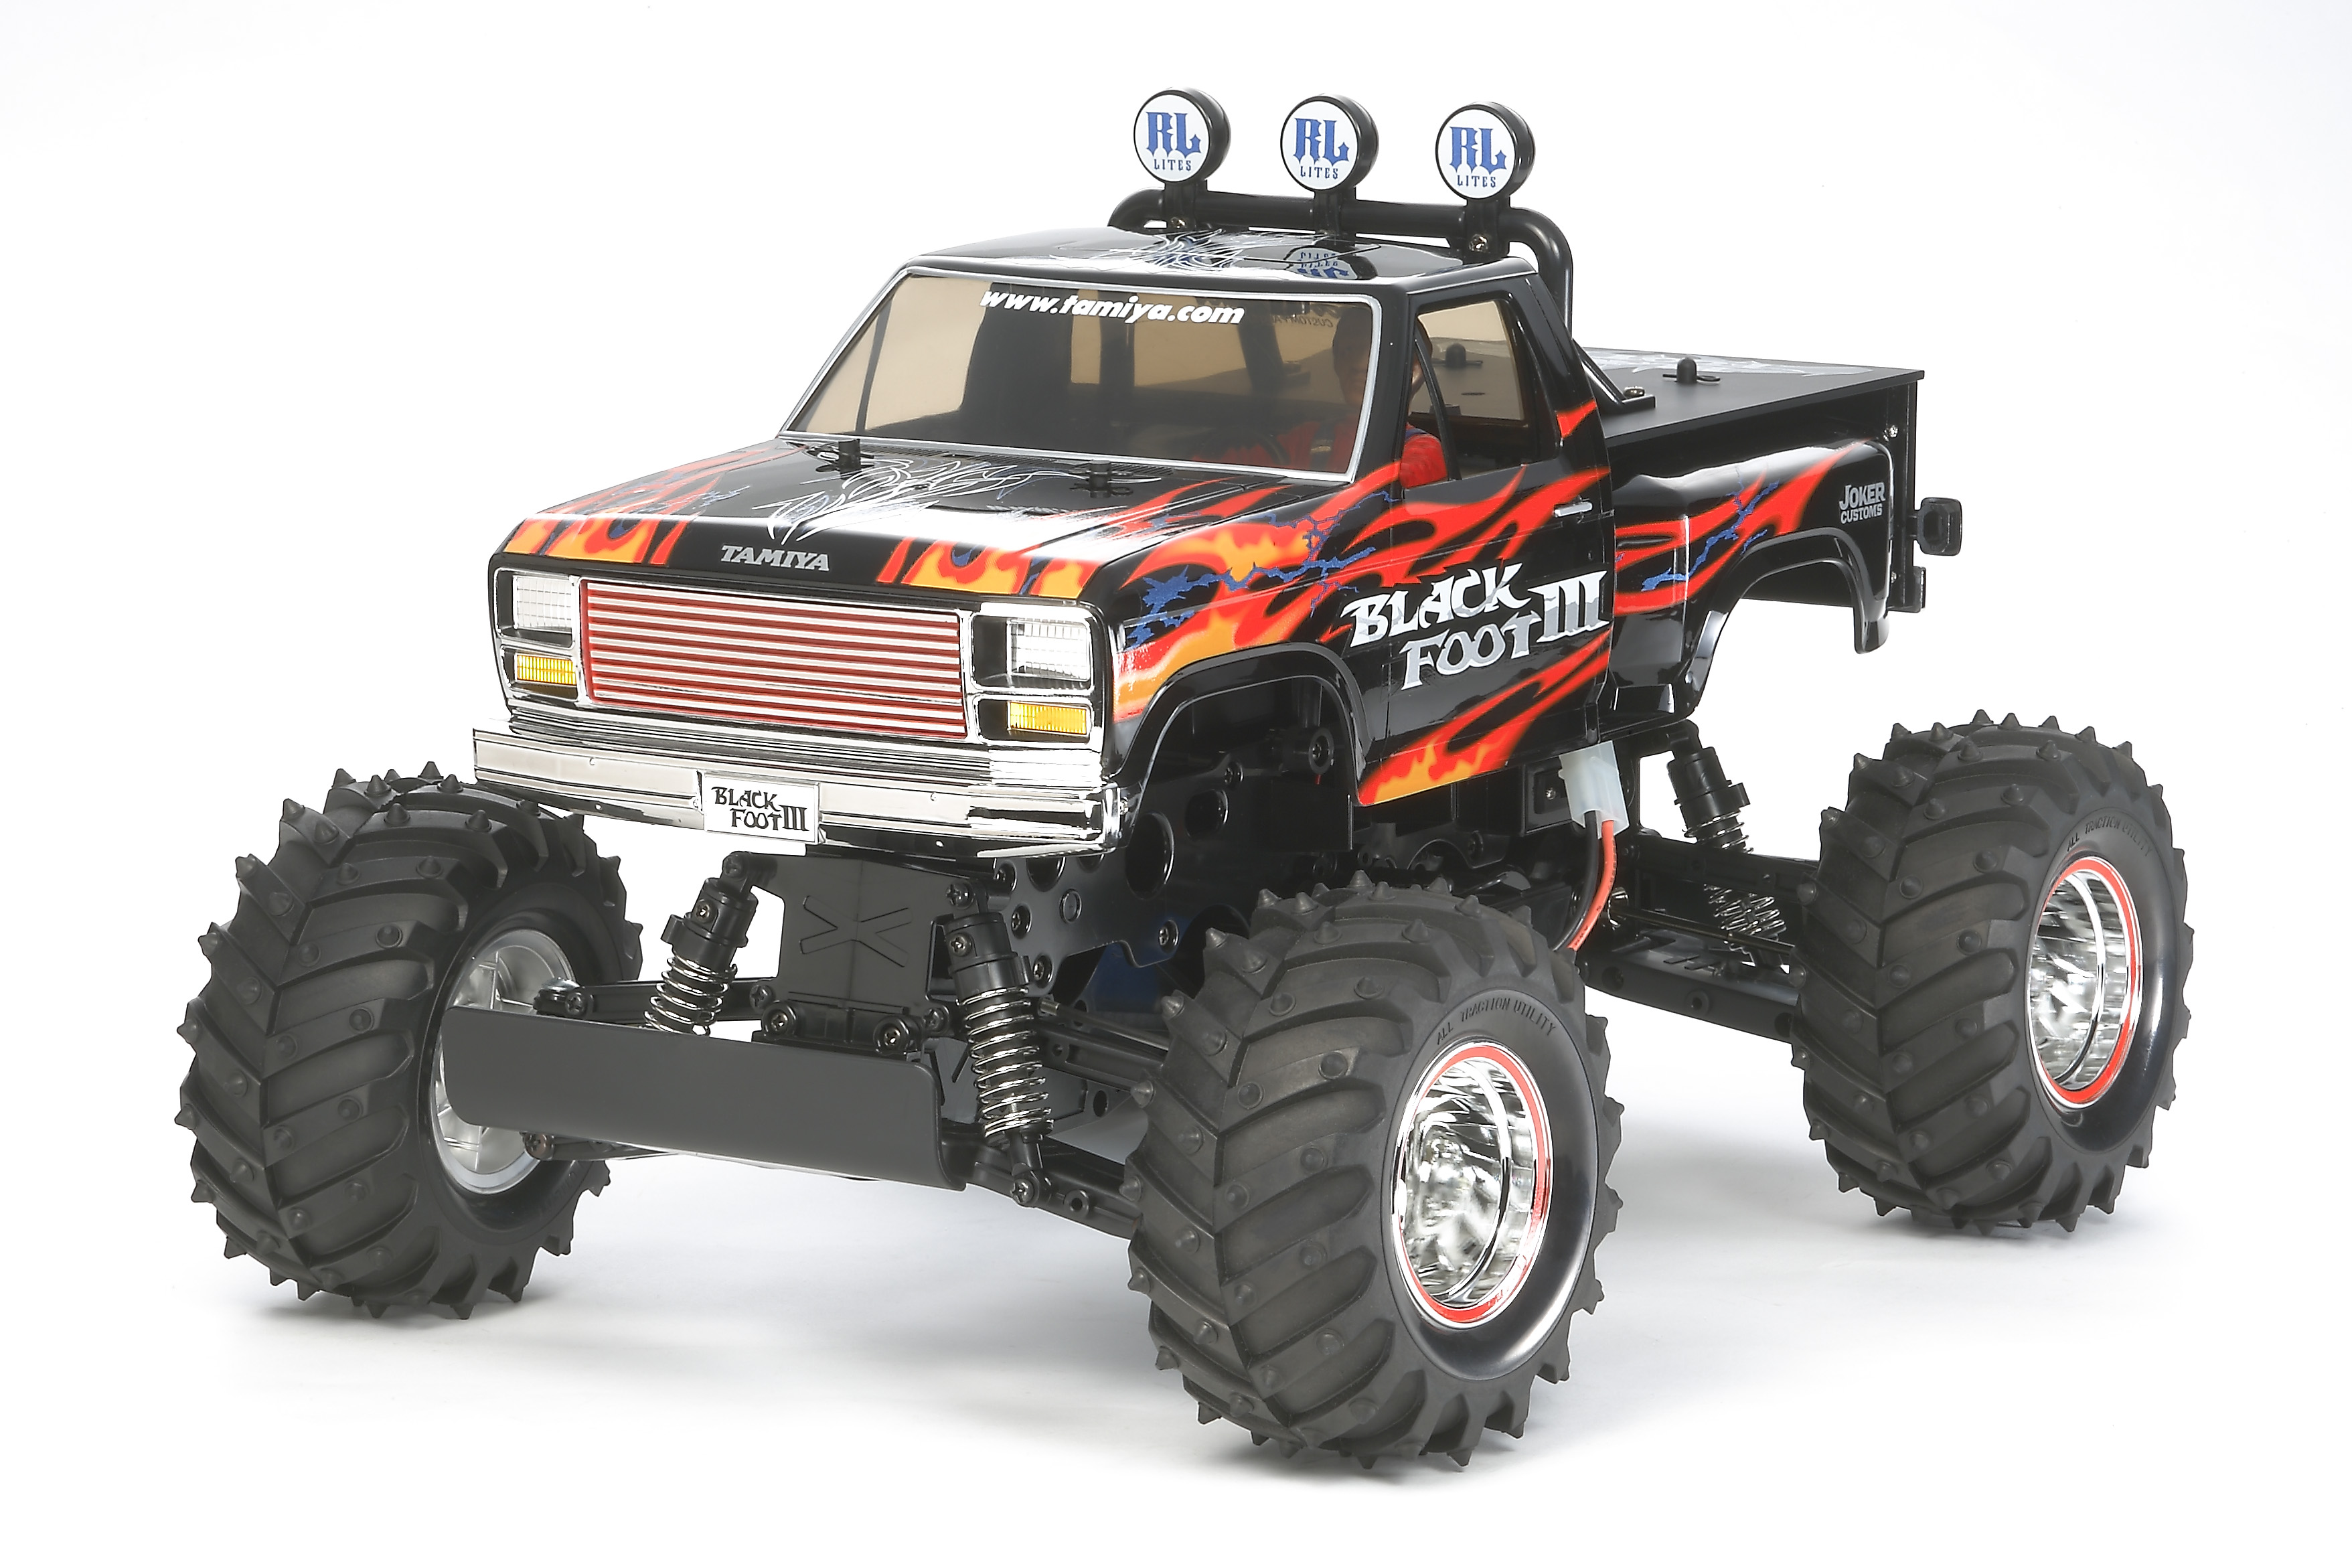 Tamiya Blackfoot III–EXCLUSIVE INTERVIEW